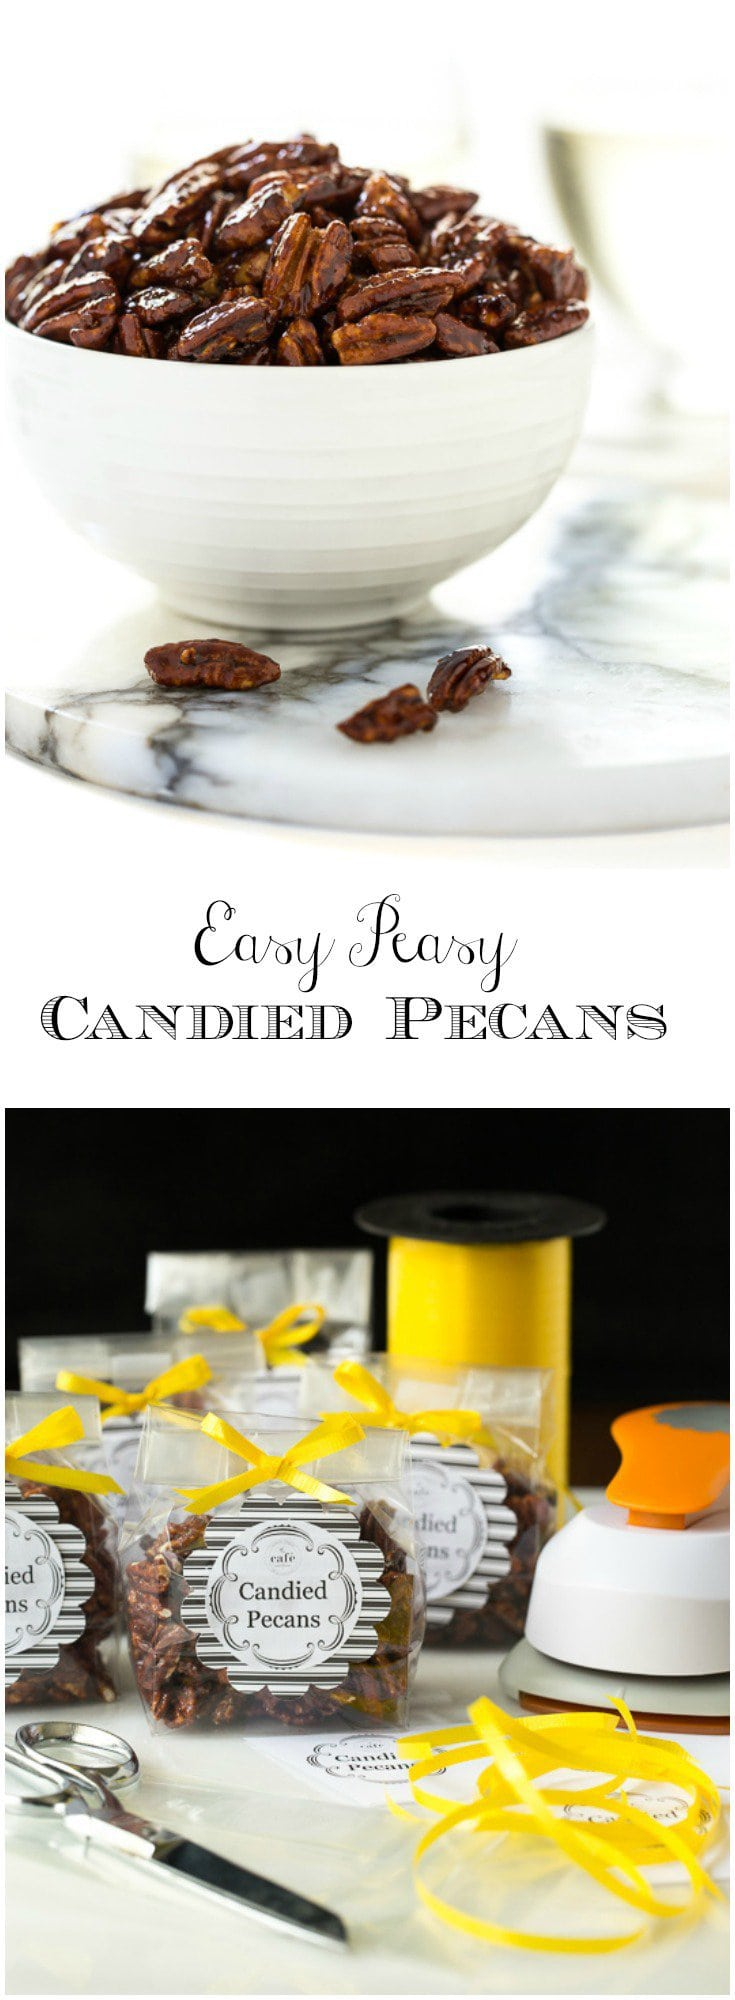 You'll find a zillion ways to use these Easy Peasy Candied Pecans... a delicious cocktail nibble, fabulous salad topping, awesome hostess gift...